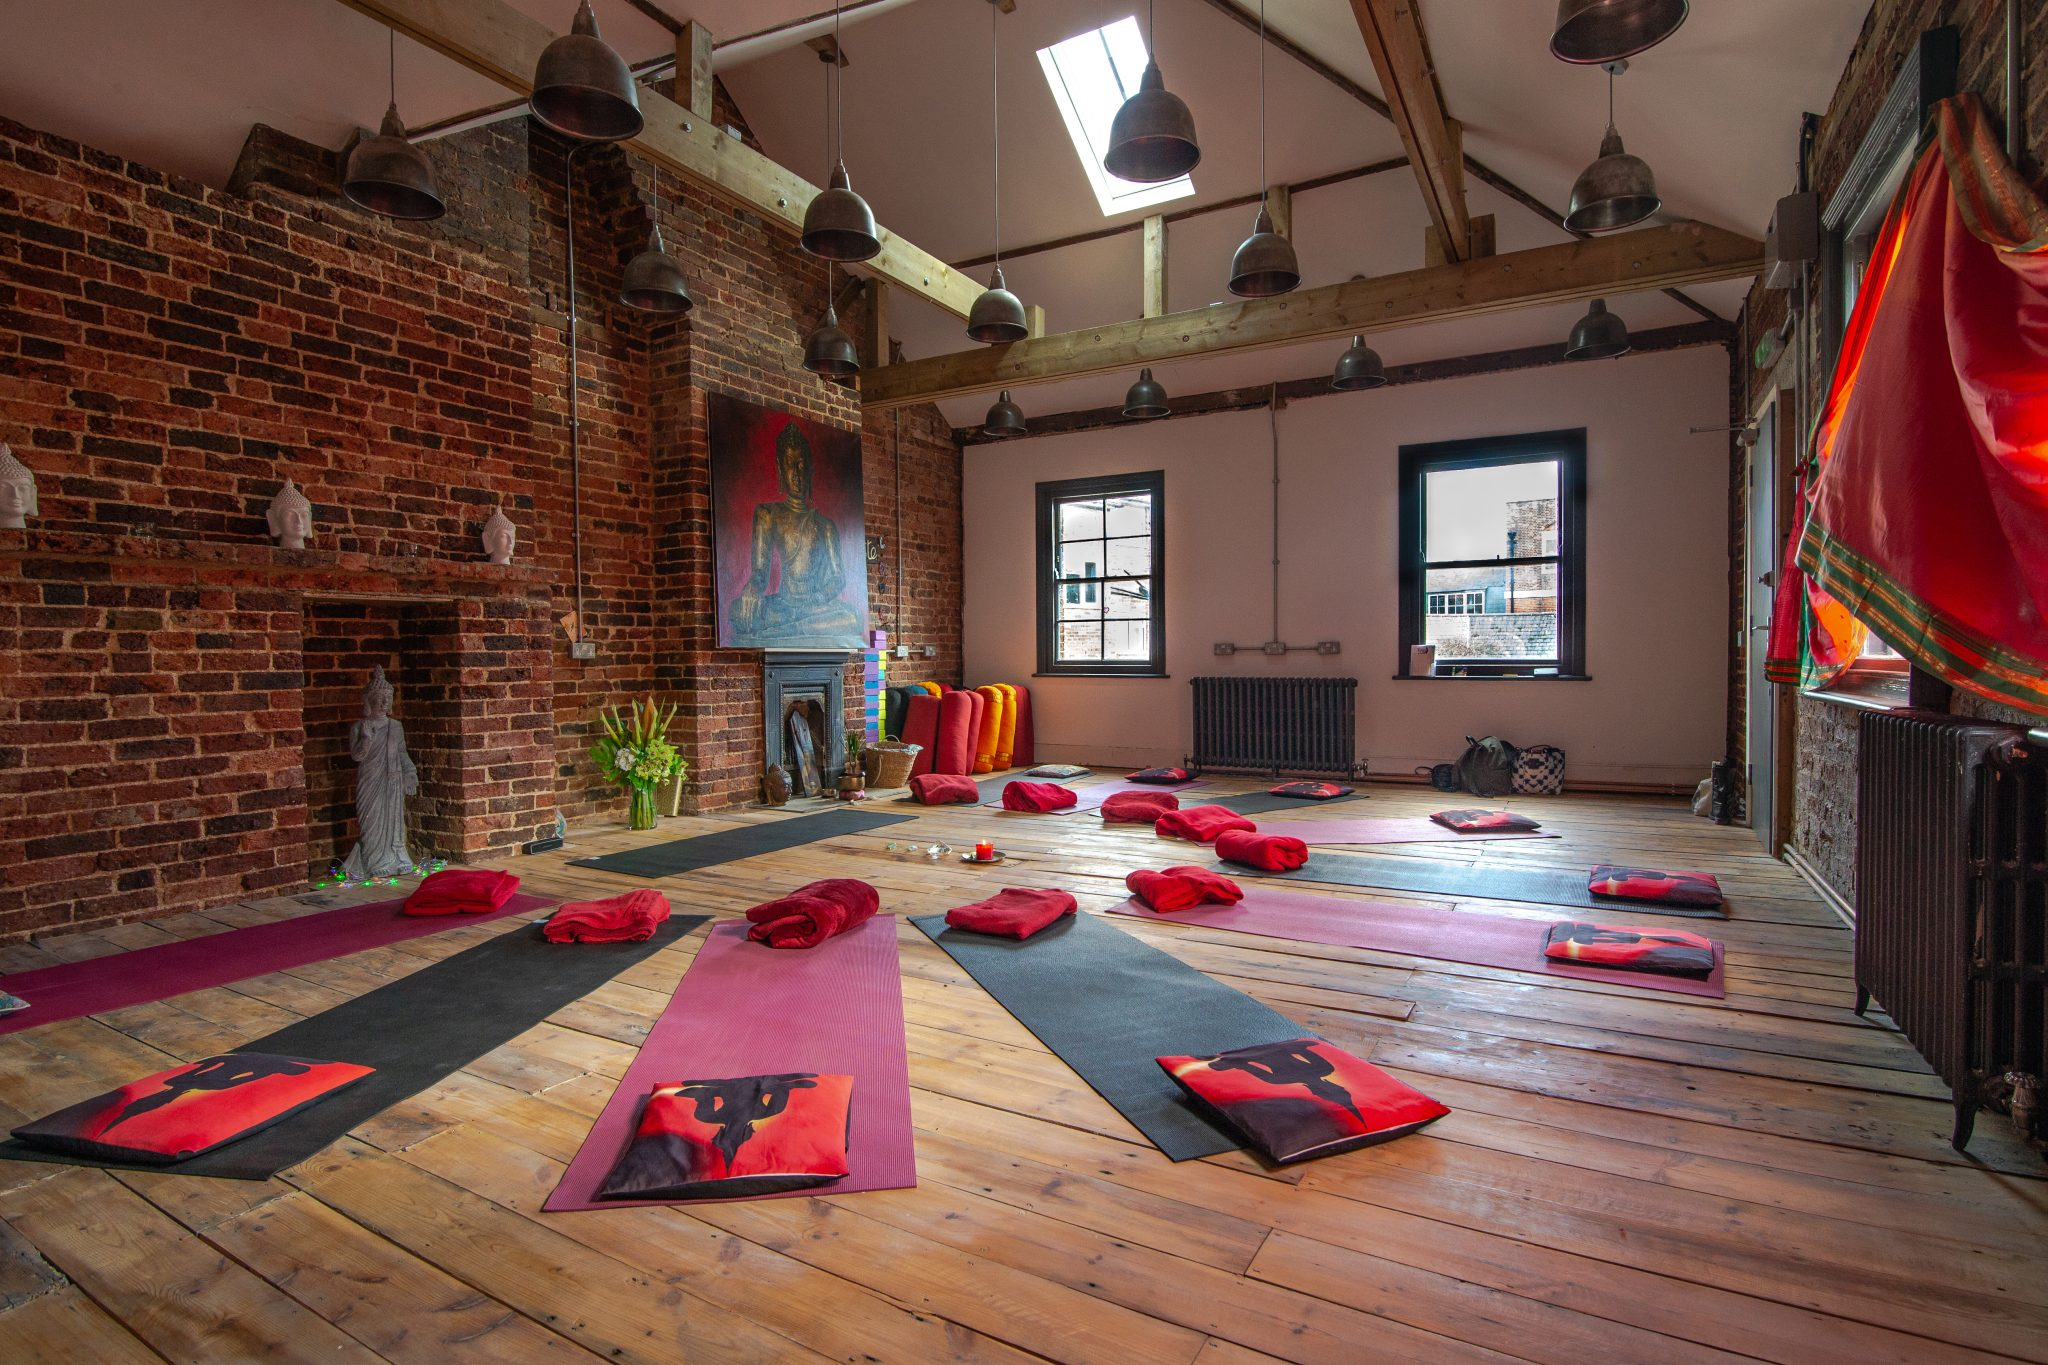 Image of the yoga life studios in Eastbourne